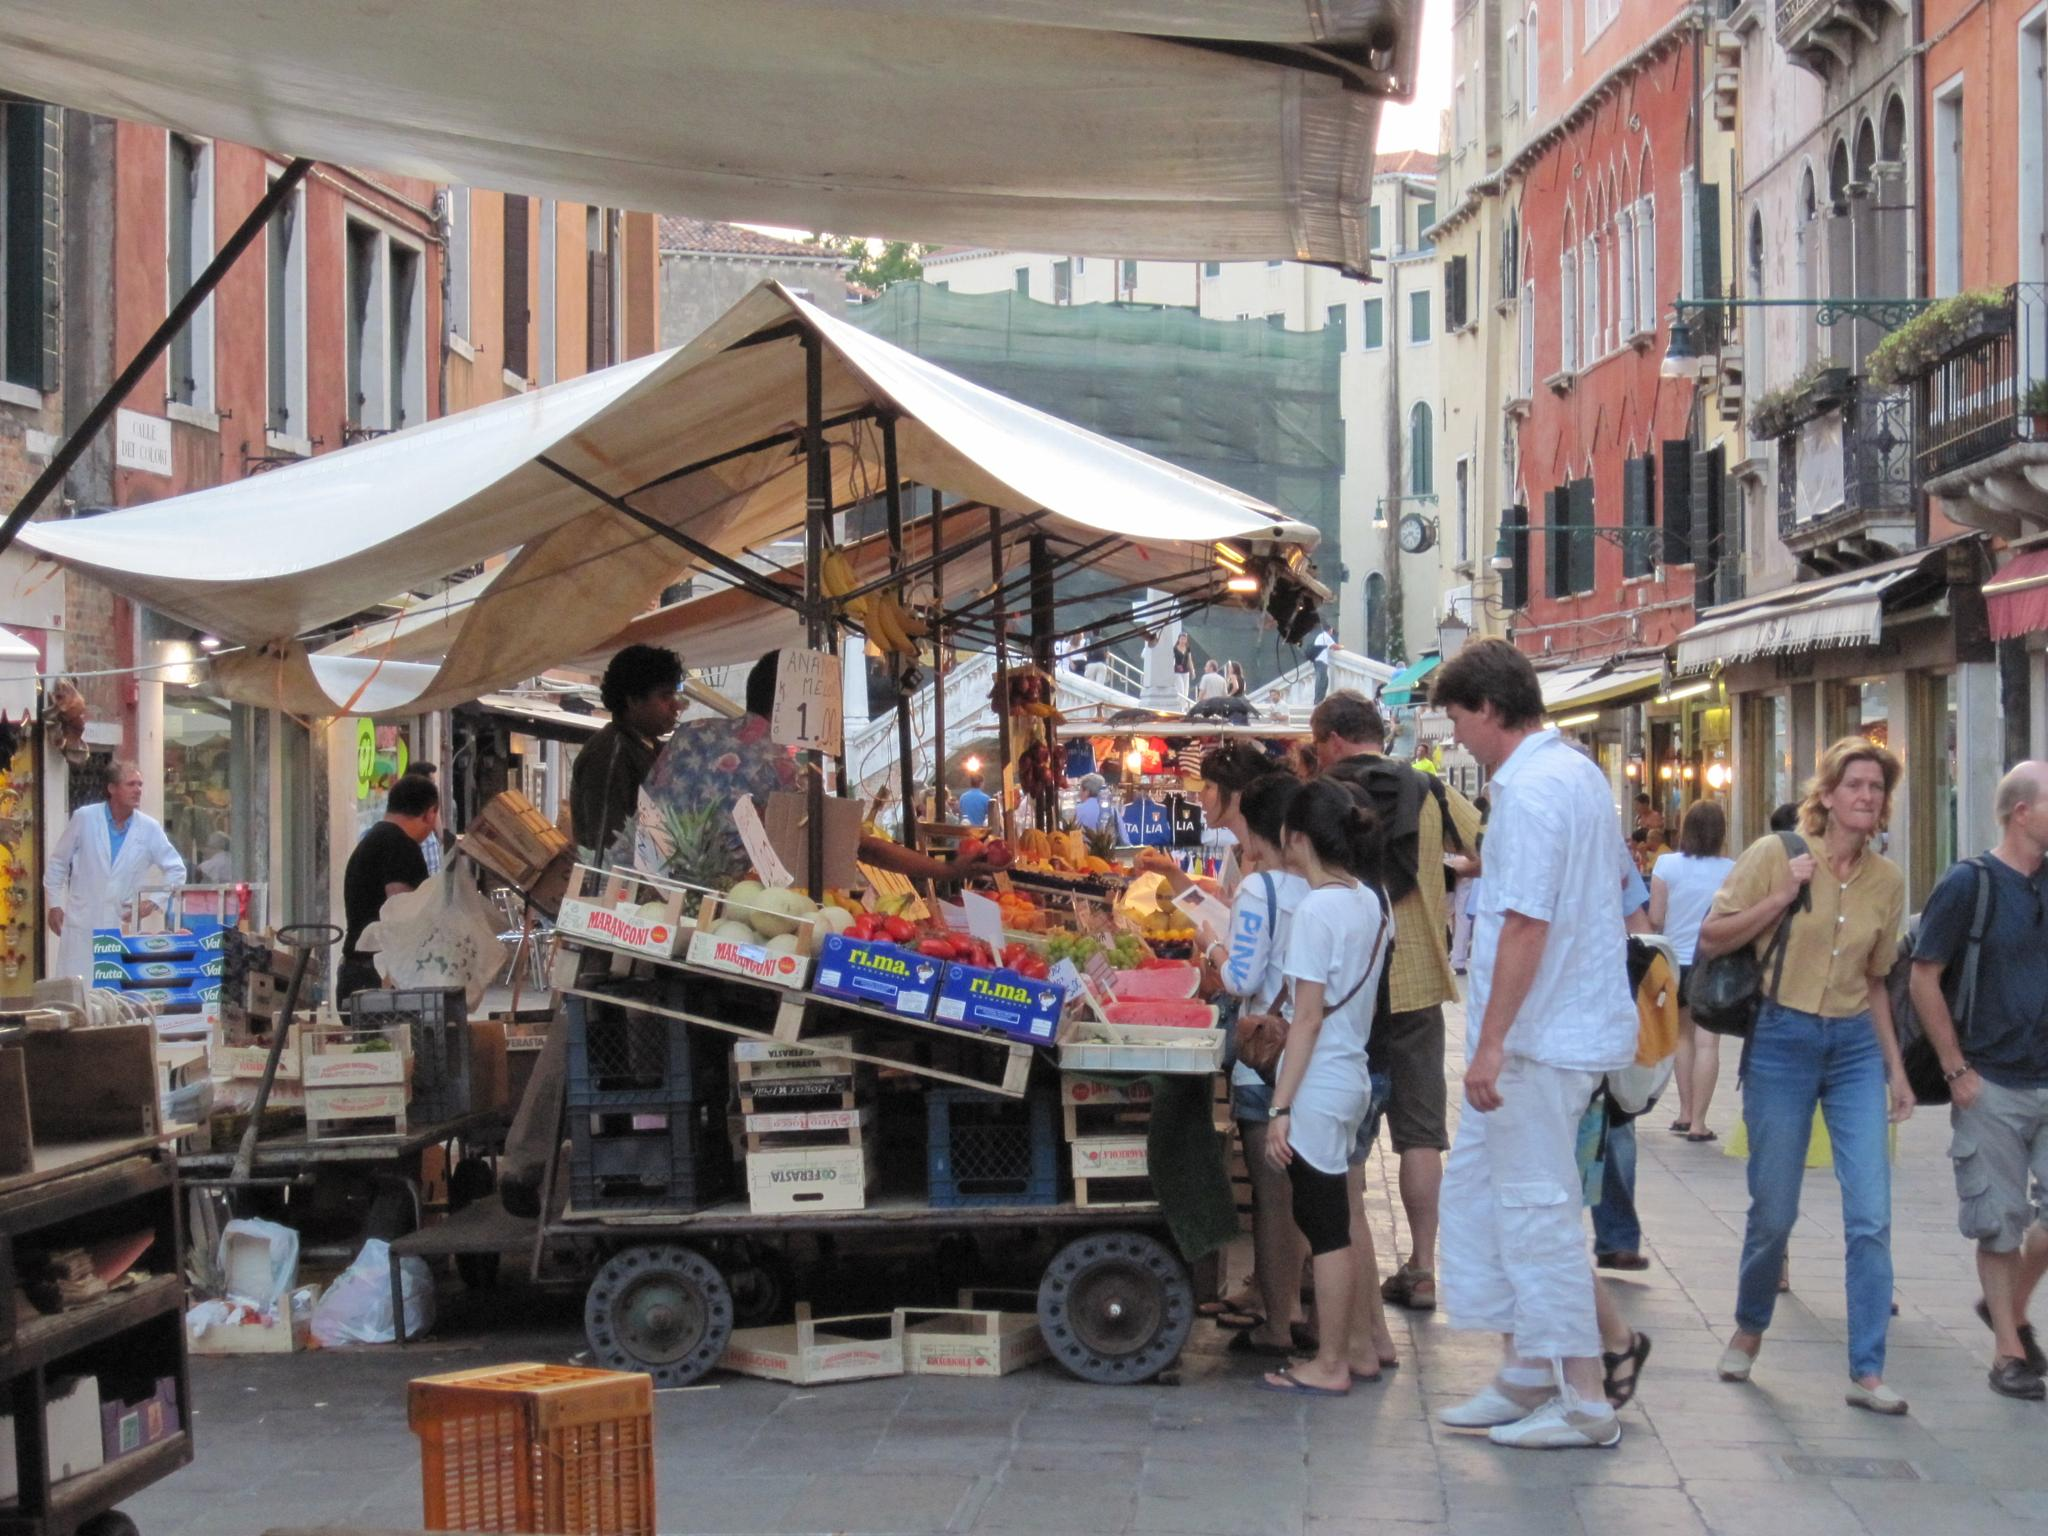 the Market in Venice by janet renee'